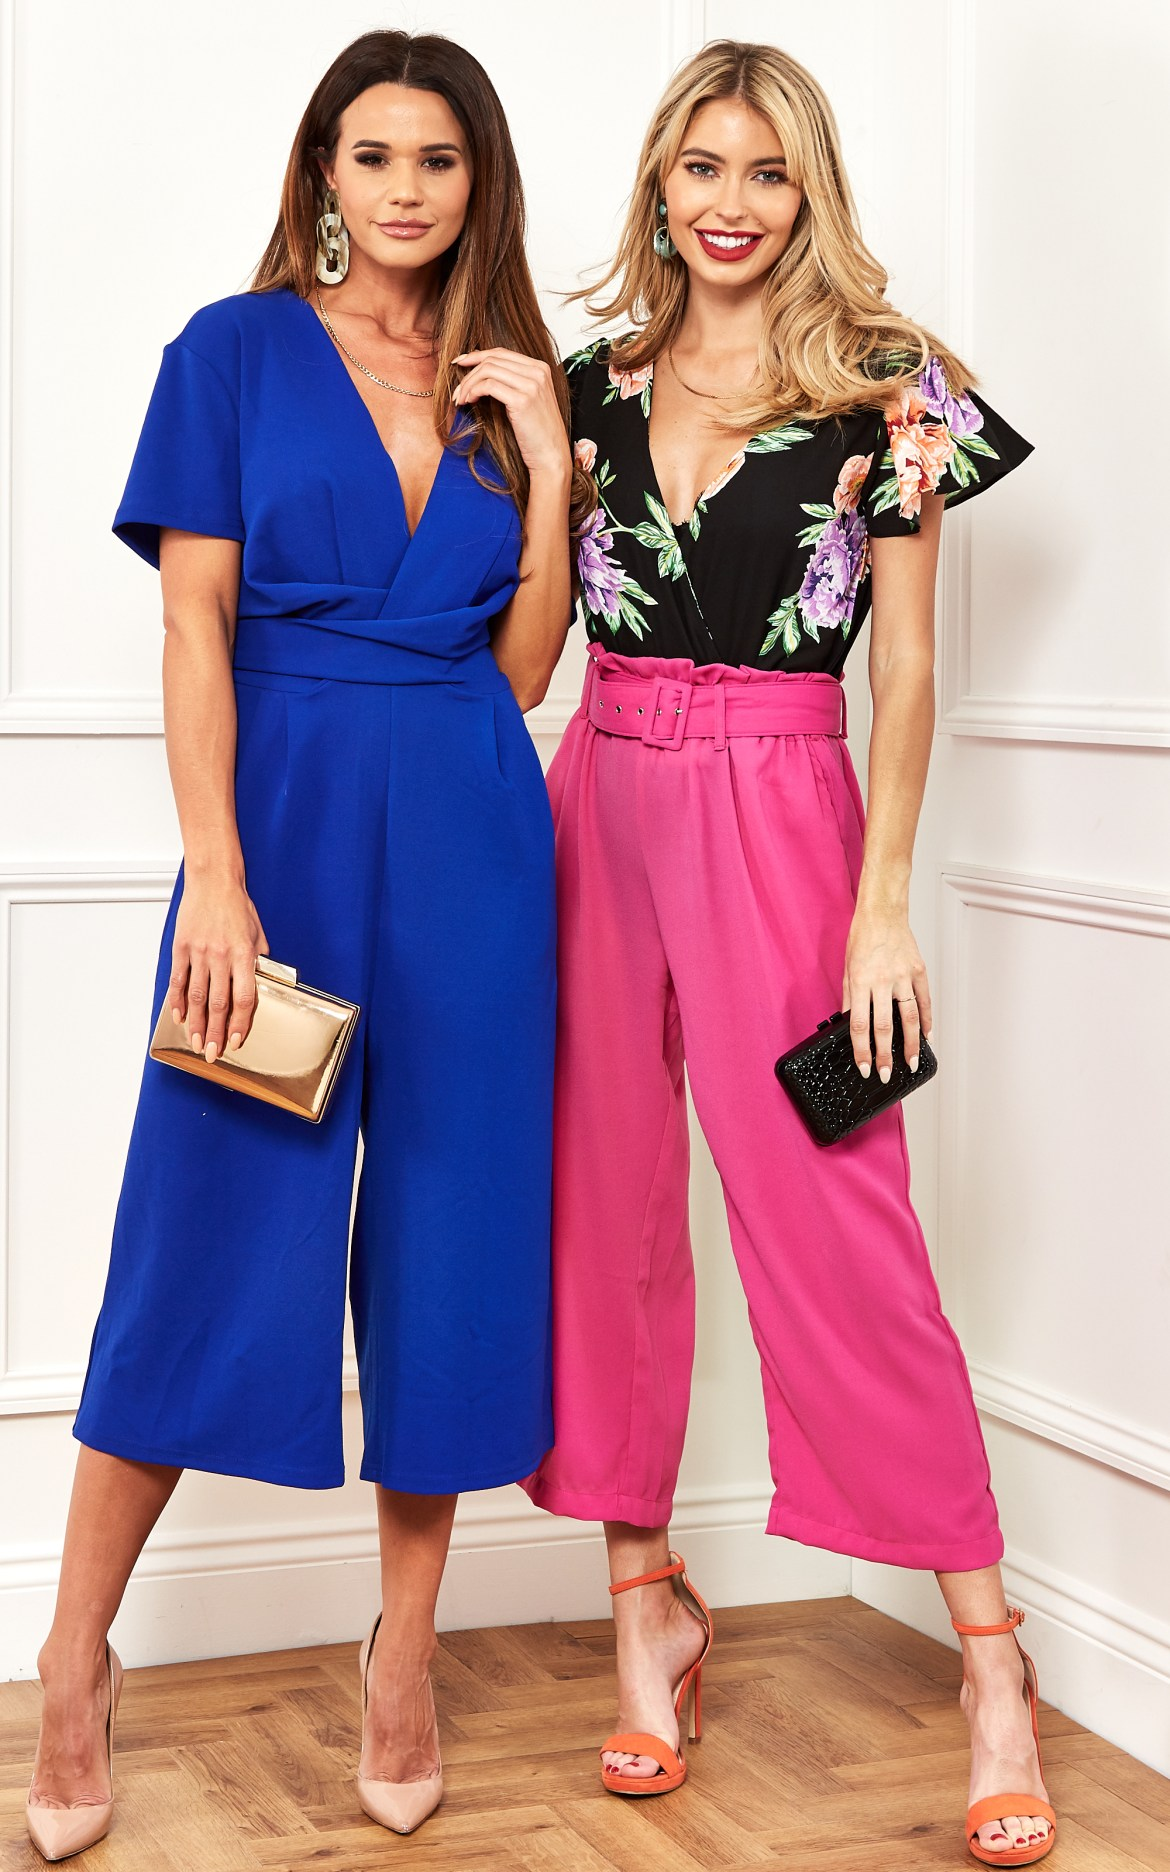 a6405158476 Say no to the dress  Alternative wedding guest outfits - SilkFred Blog